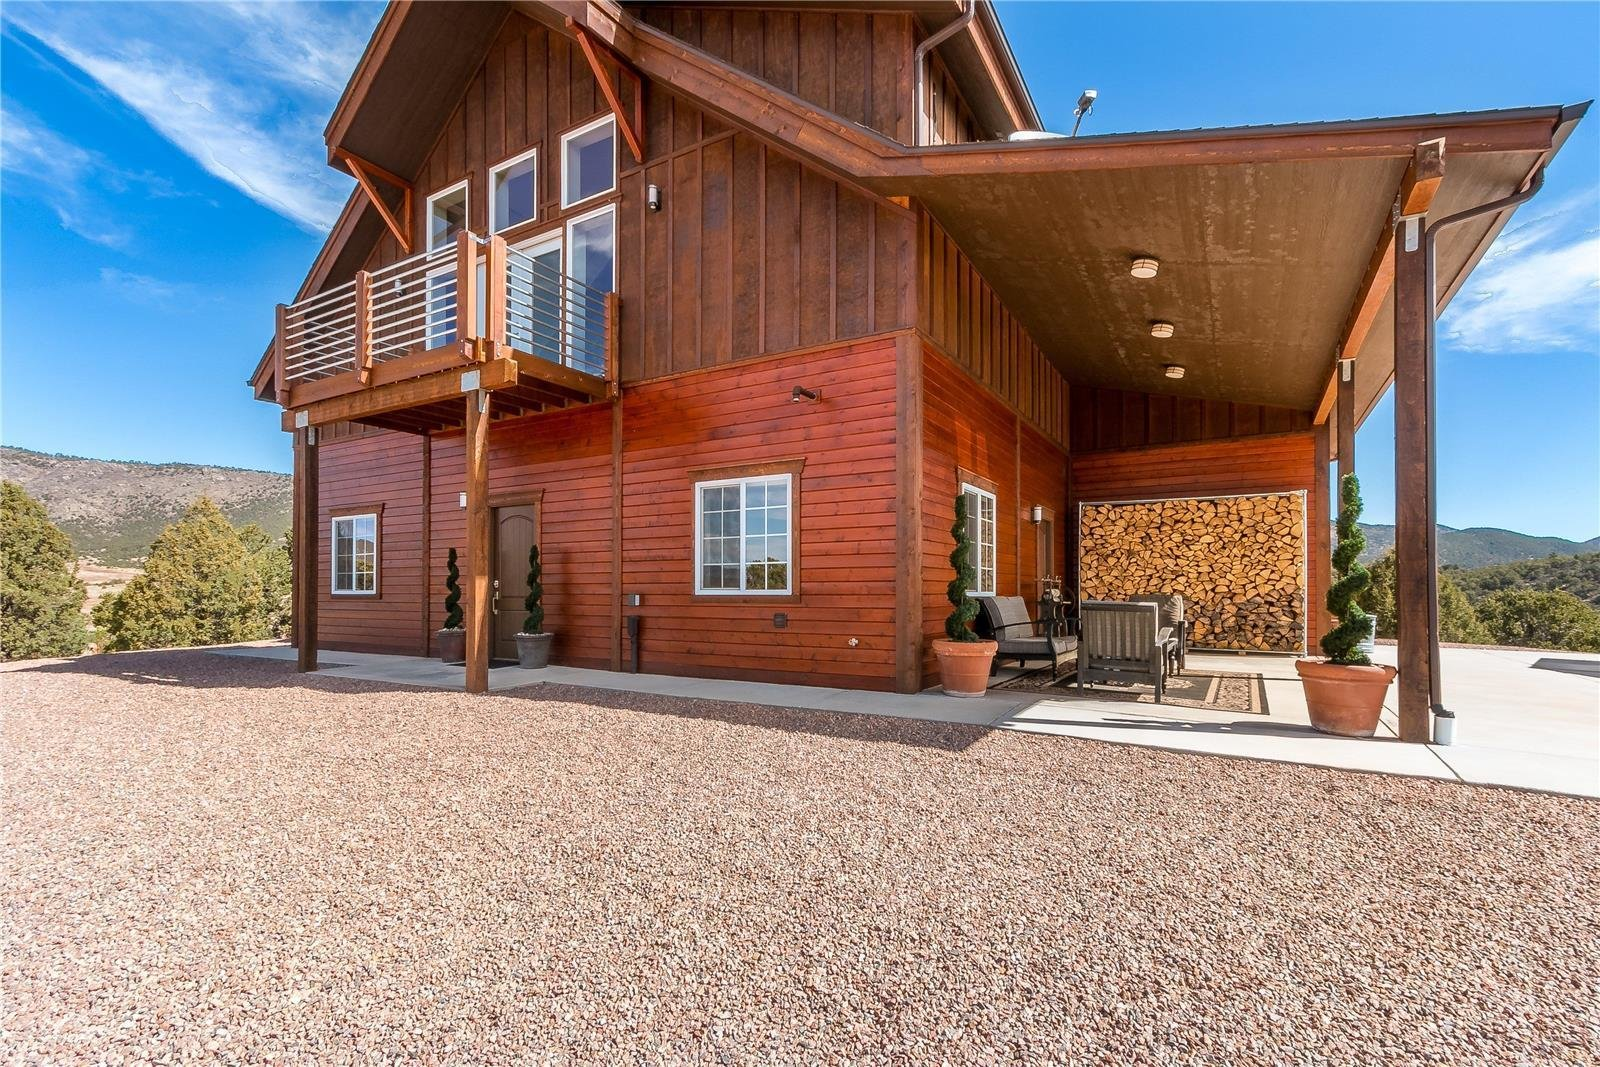 This off-grid mountain barn home located in the heart of the Rockies sits at 7,500 feet and has expansive, beautiful views of the foothills below. The model is a Barn Pros 36 ft. x 36 ft. Denali barn apartment with a partially enclosed shed roof on one side for outdoor seating and entertainment area.  Photo 8 of 11 in 10 Prefab Barn Companies That Bring DIY to Home Building